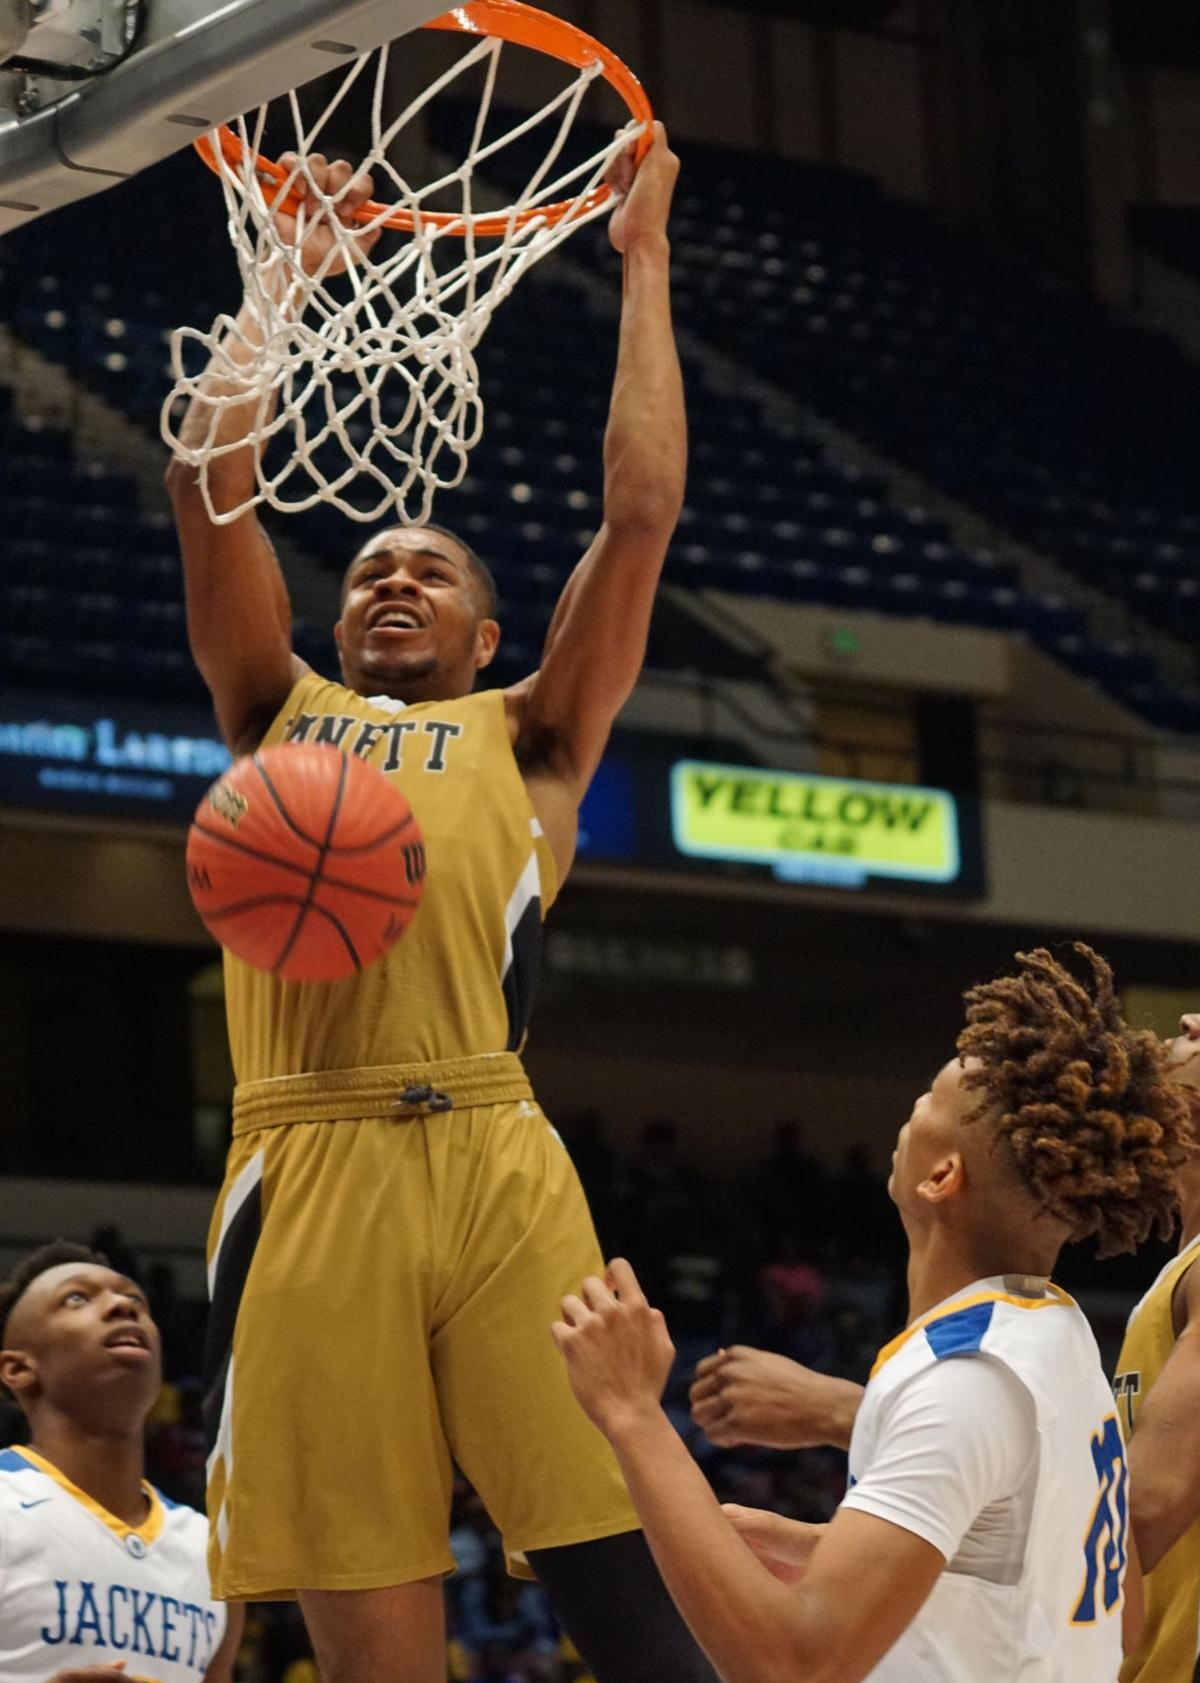 Lanett's Emanuel Littles signs with North Alabama | High ...